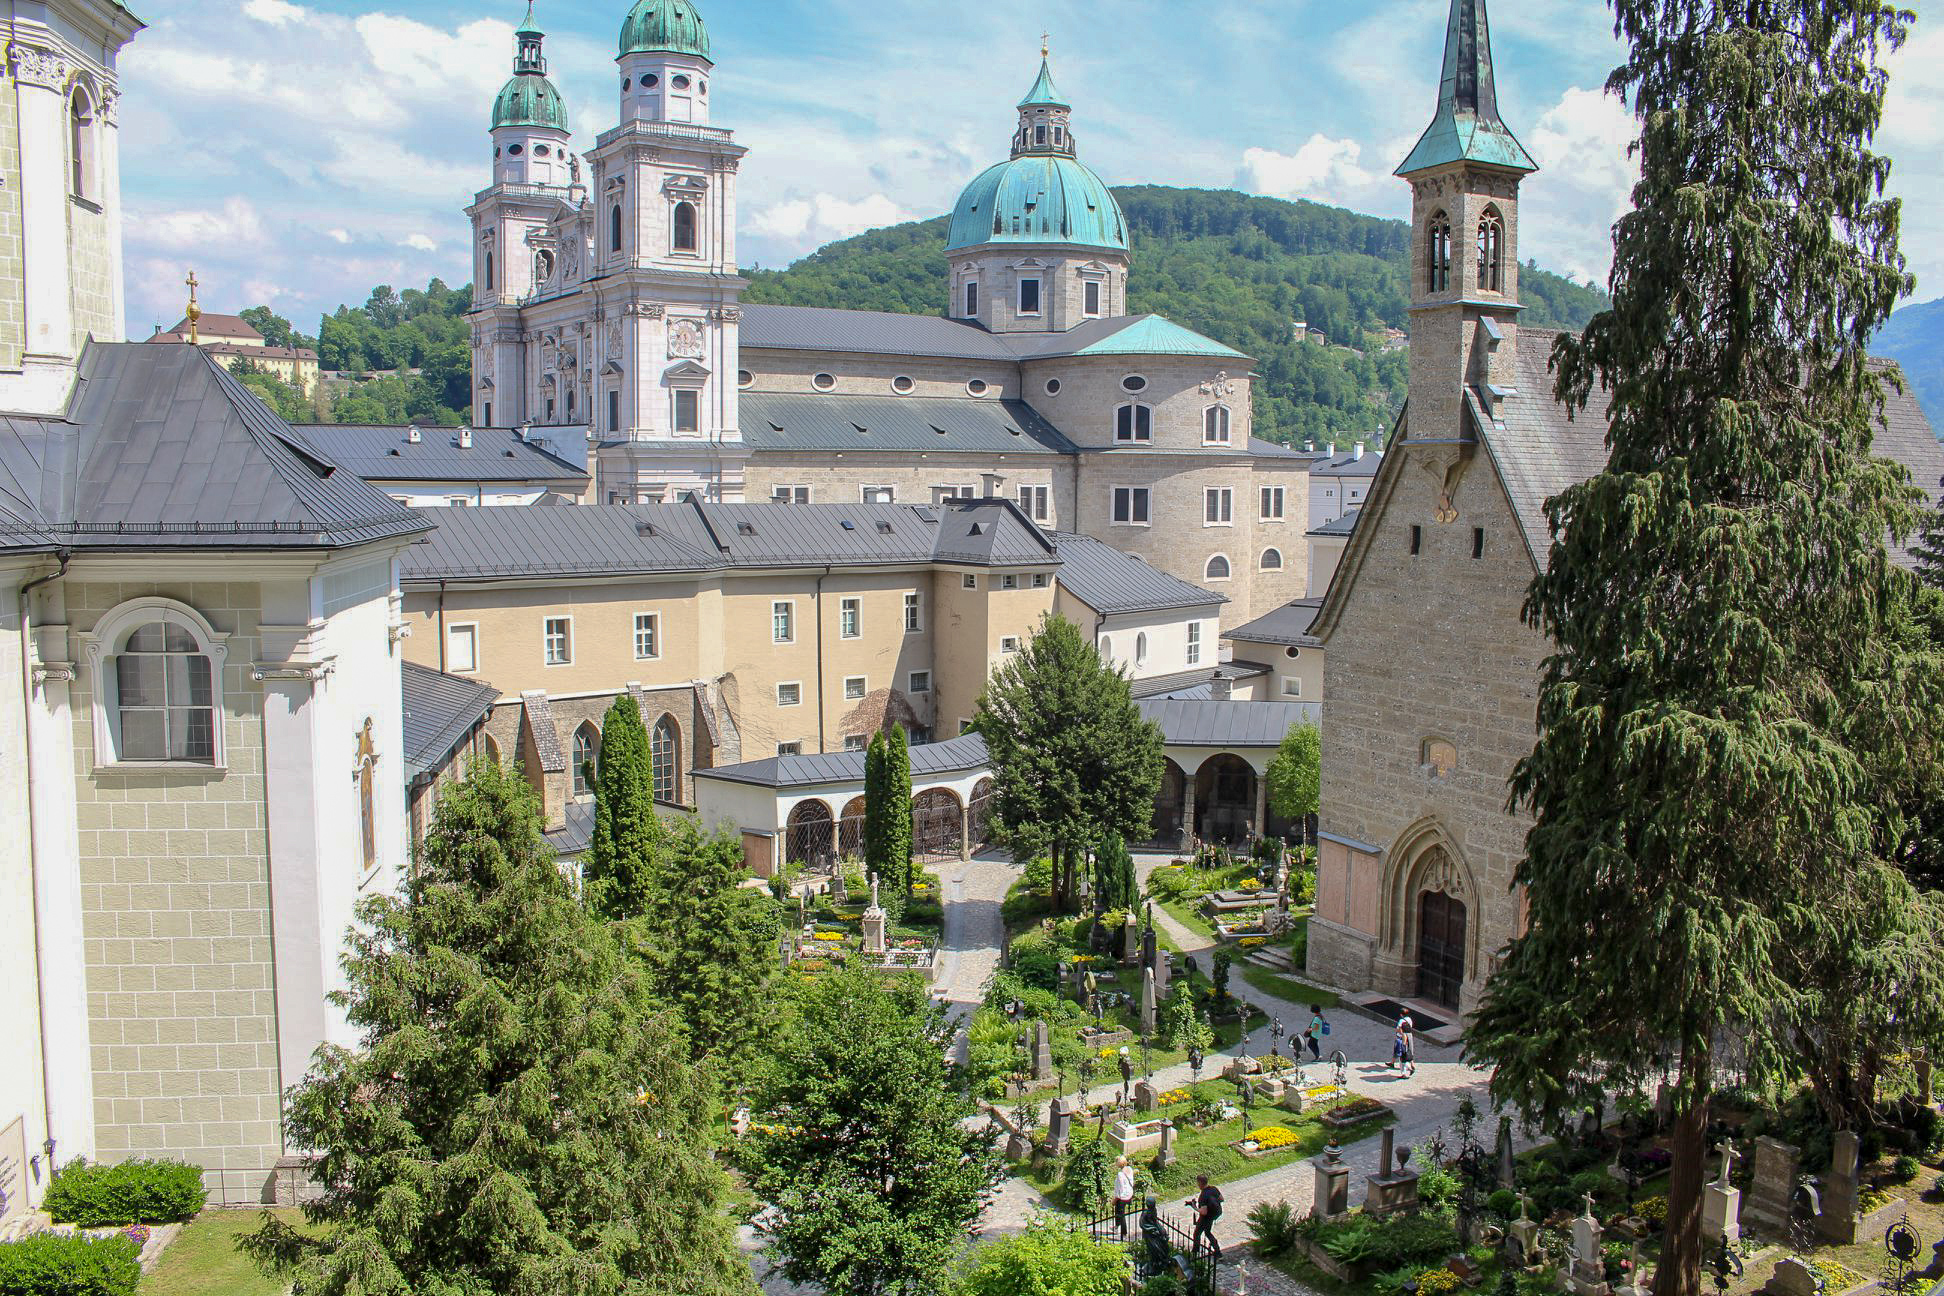 Salzburg Itinerary: The Best Things To See In 2 Days